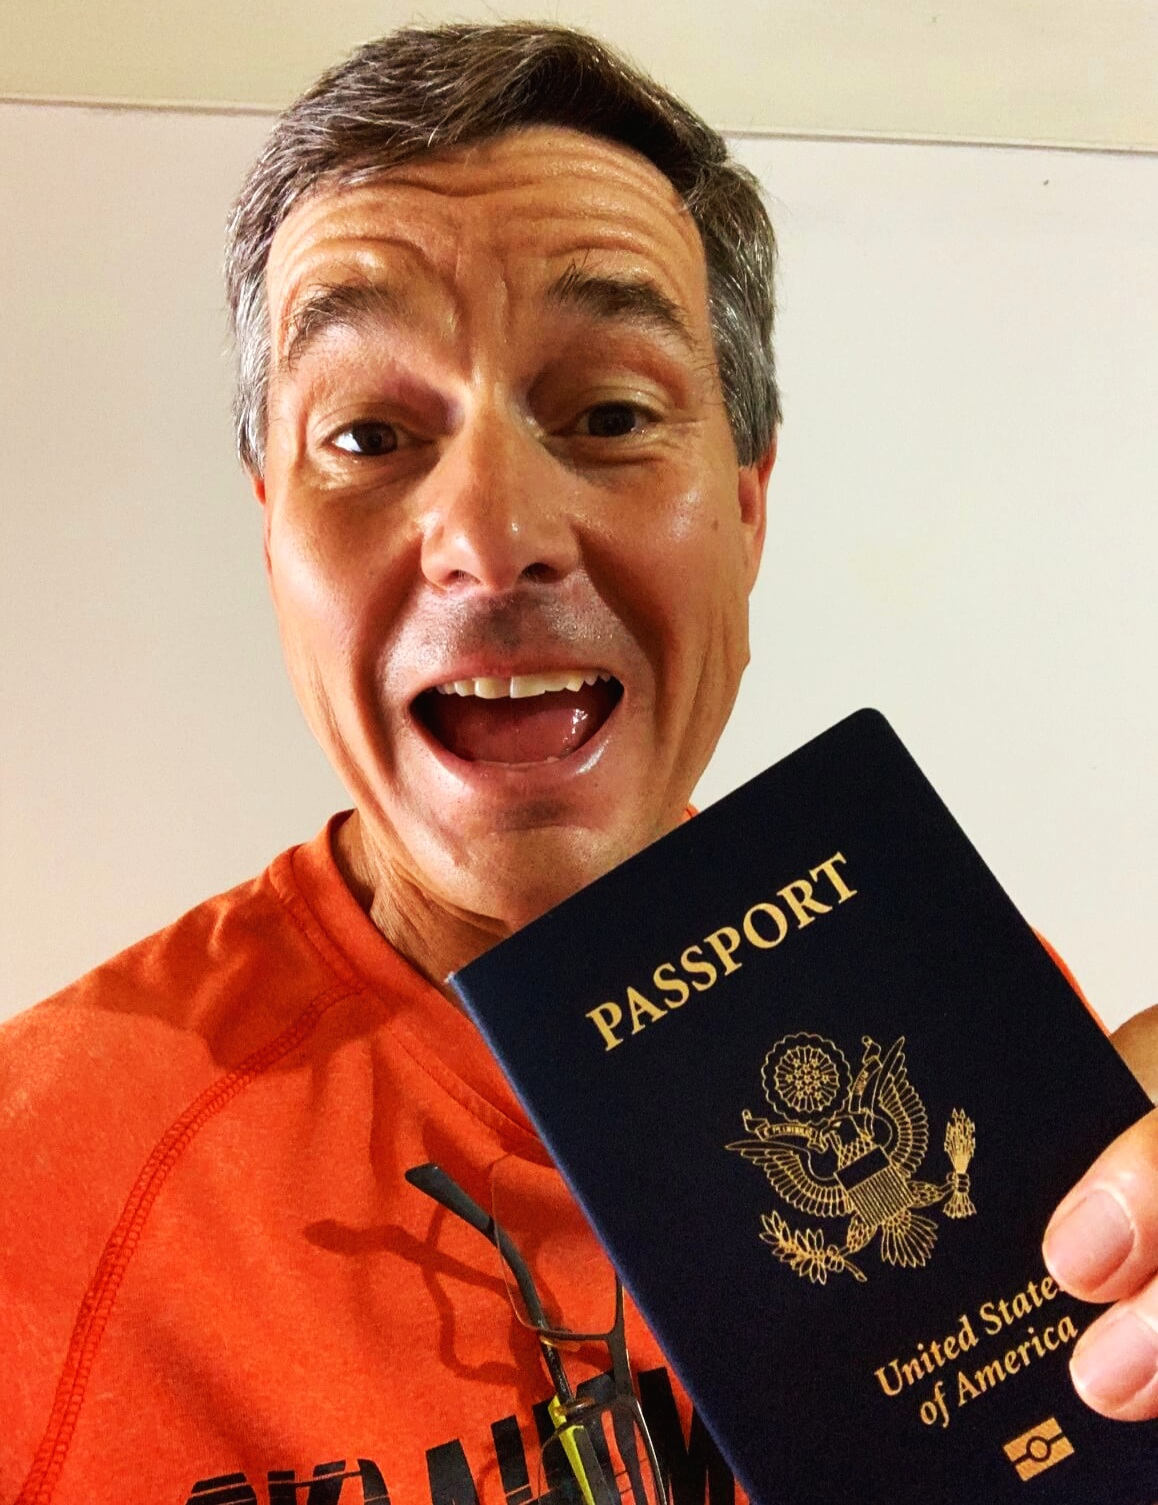 After multiple delays and frustrations, I got a passport at 2:30pm Wednesday afternoon in Dallas, Texas, and then at 6:45pm was on a plane to Guatemala! But it wasn't really that simple…